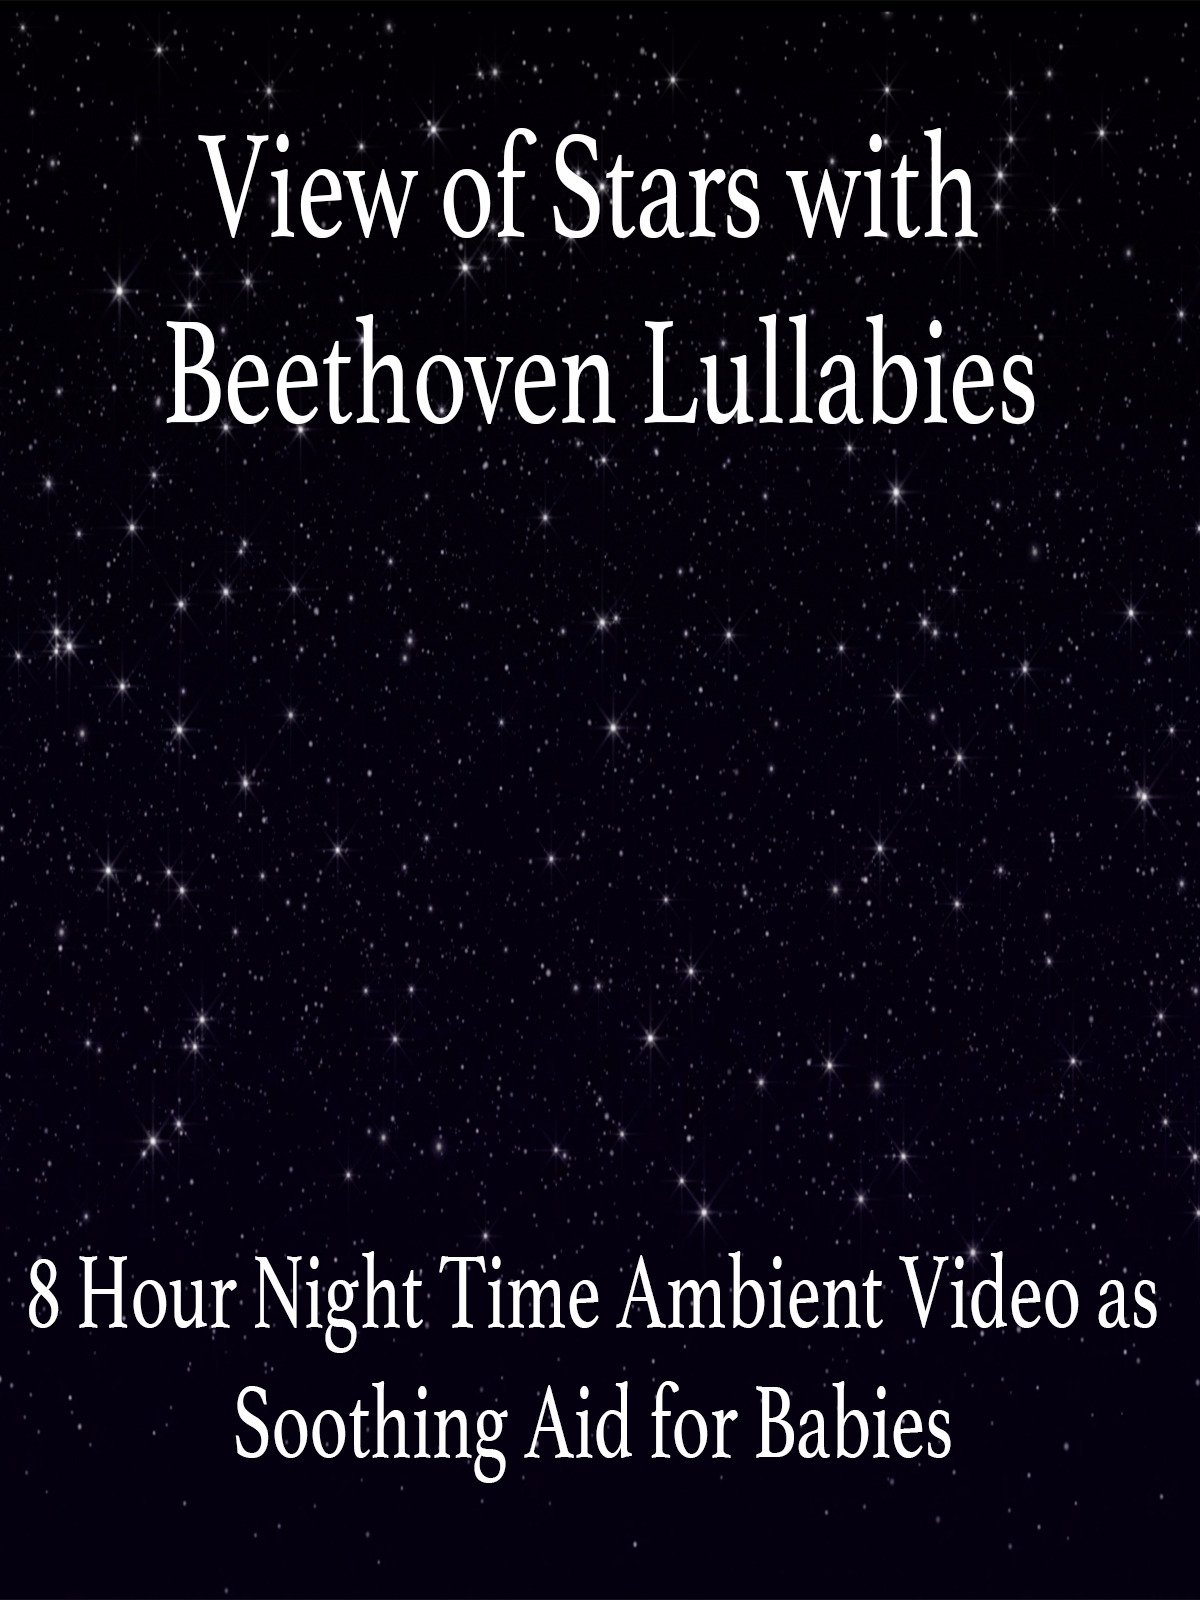 View of Stars with Beethoven Lullabies 8 Hour Night Time Ambient Video as Soothing Aid for Babies